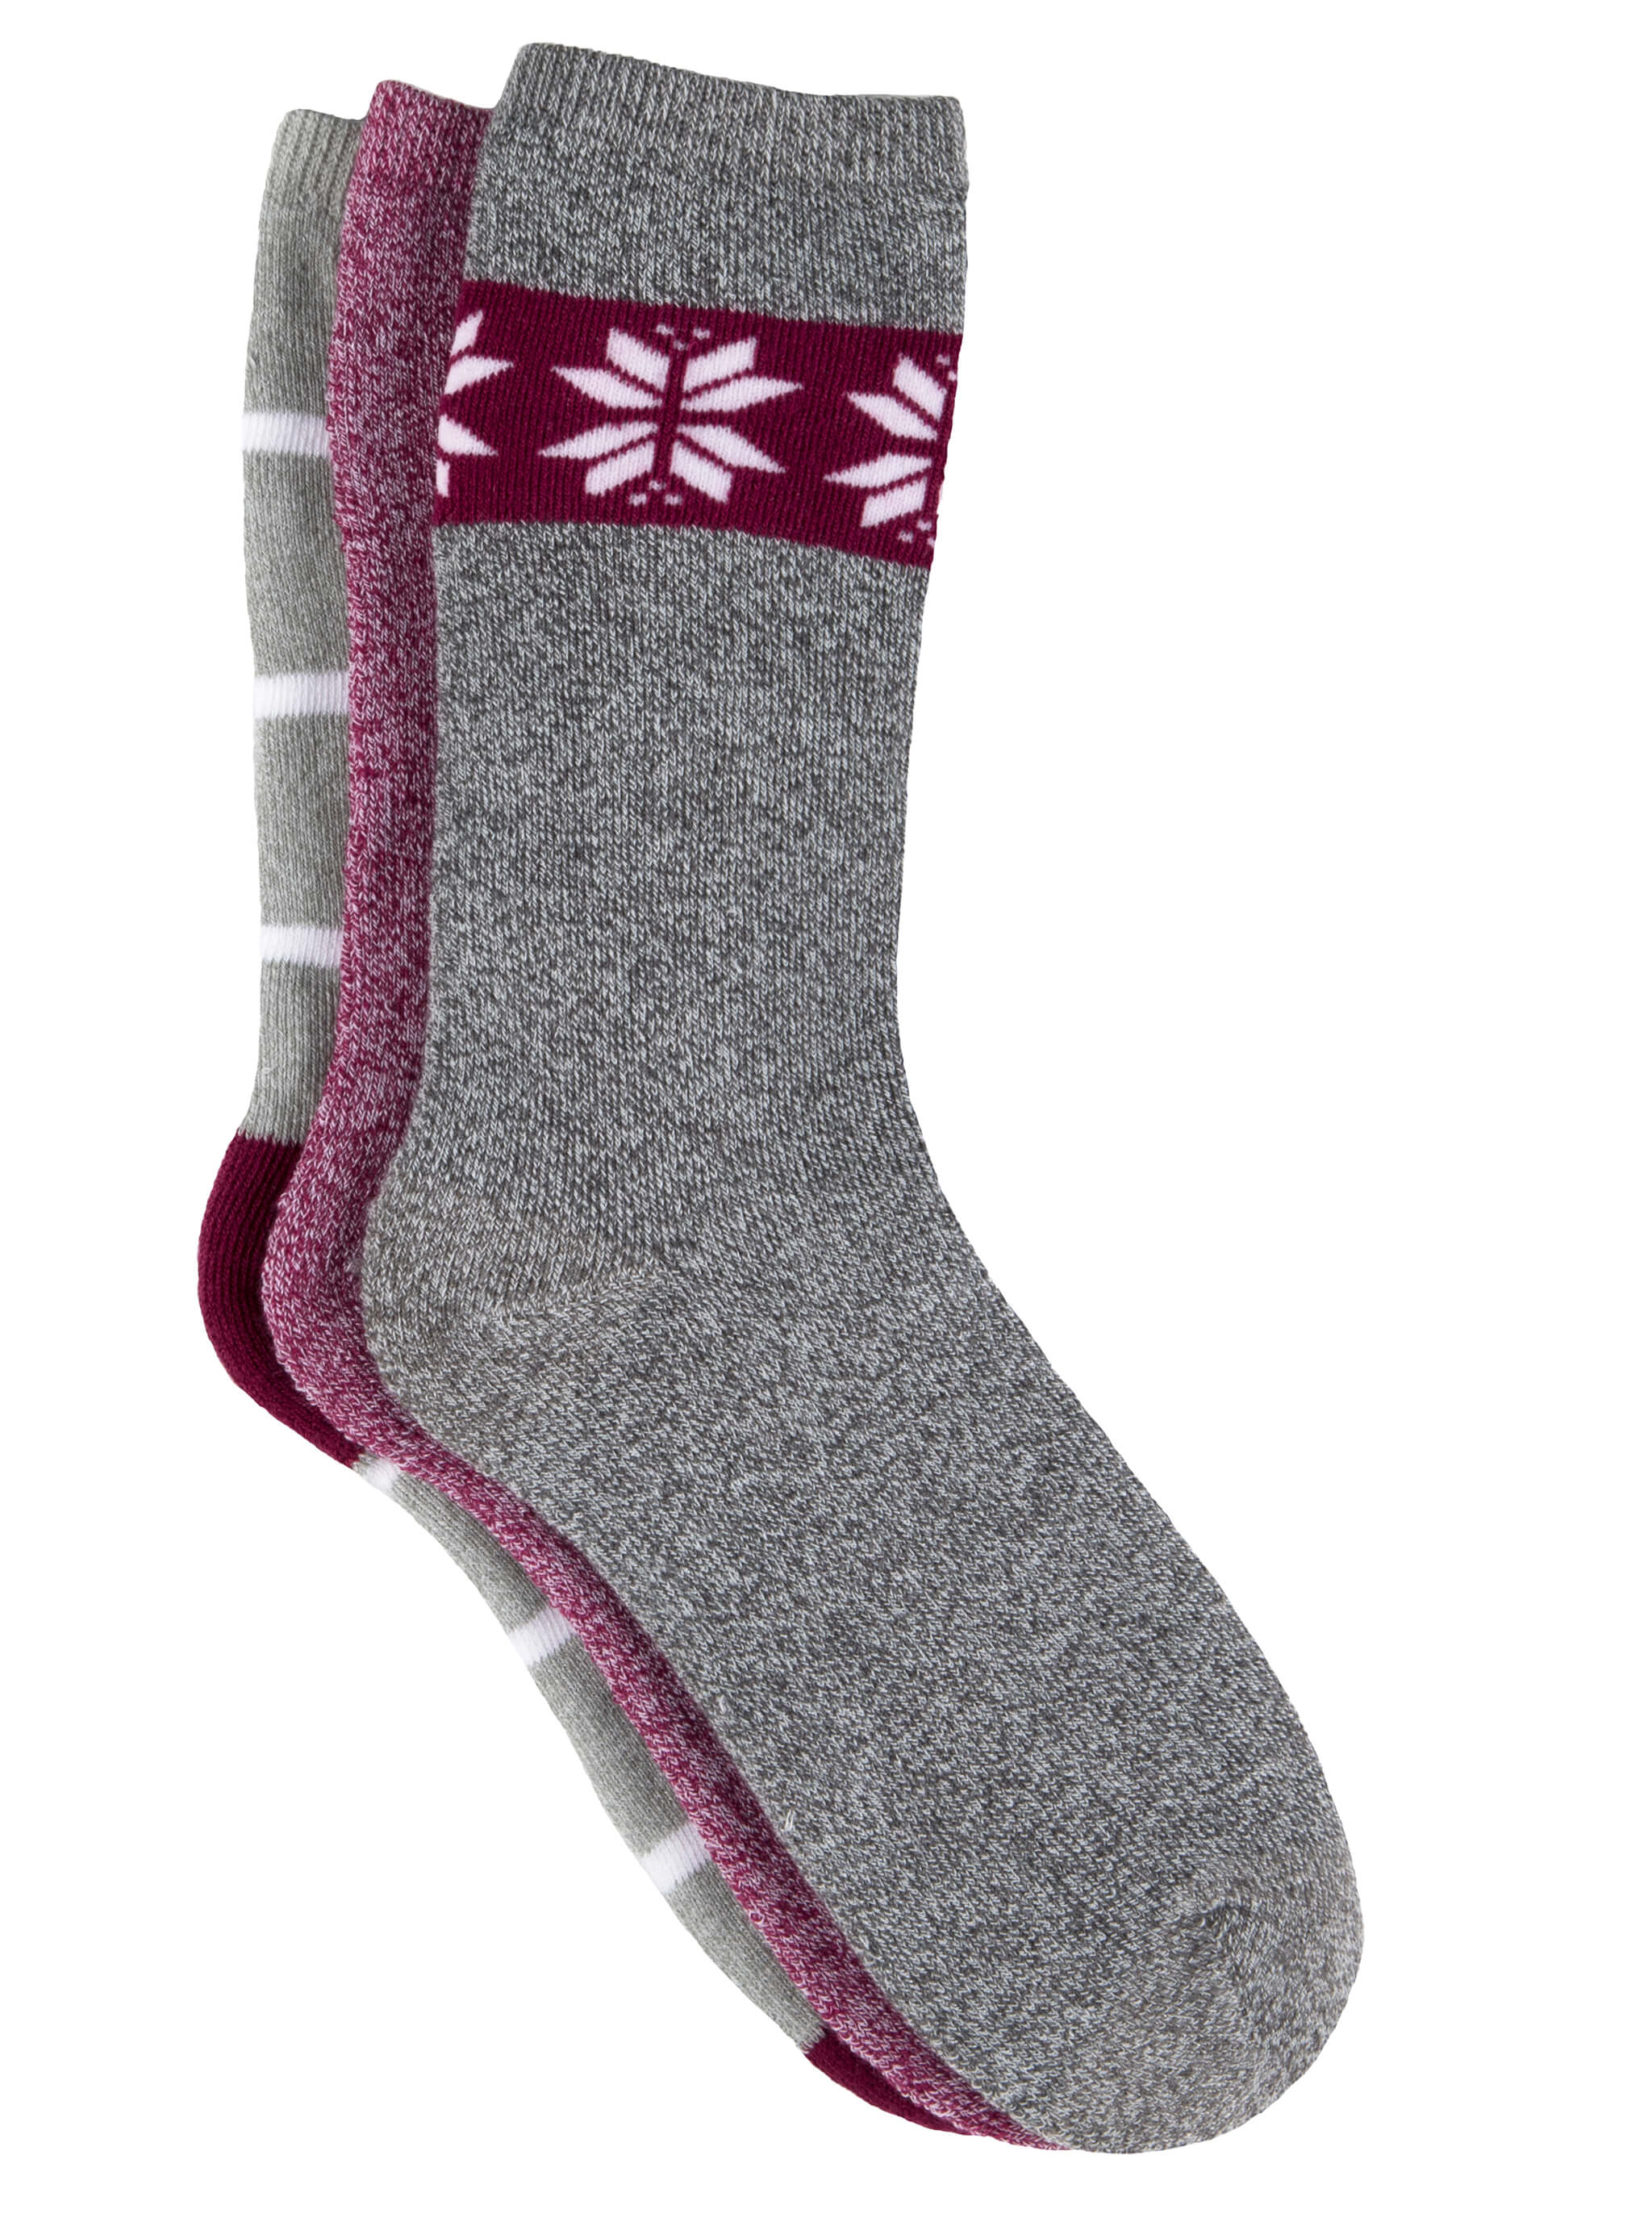 Free Country Women's Fair Isle Full Cushion Crew Socks - Grey